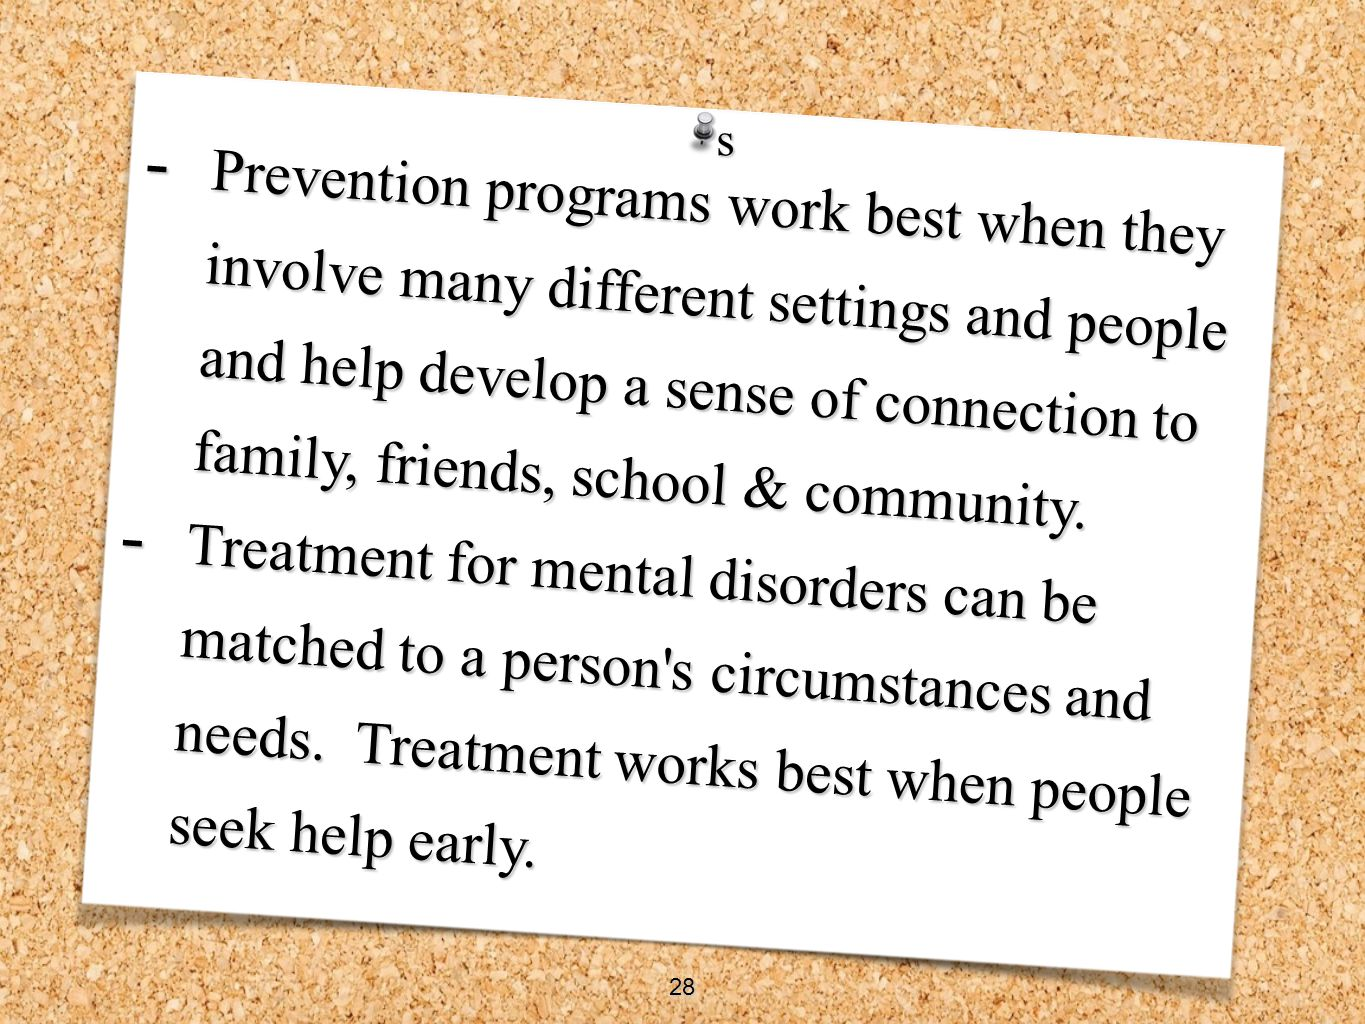 Prevention programs work best when they involve many different settings and people and help develop a sense of connection to family, friends, school & community.